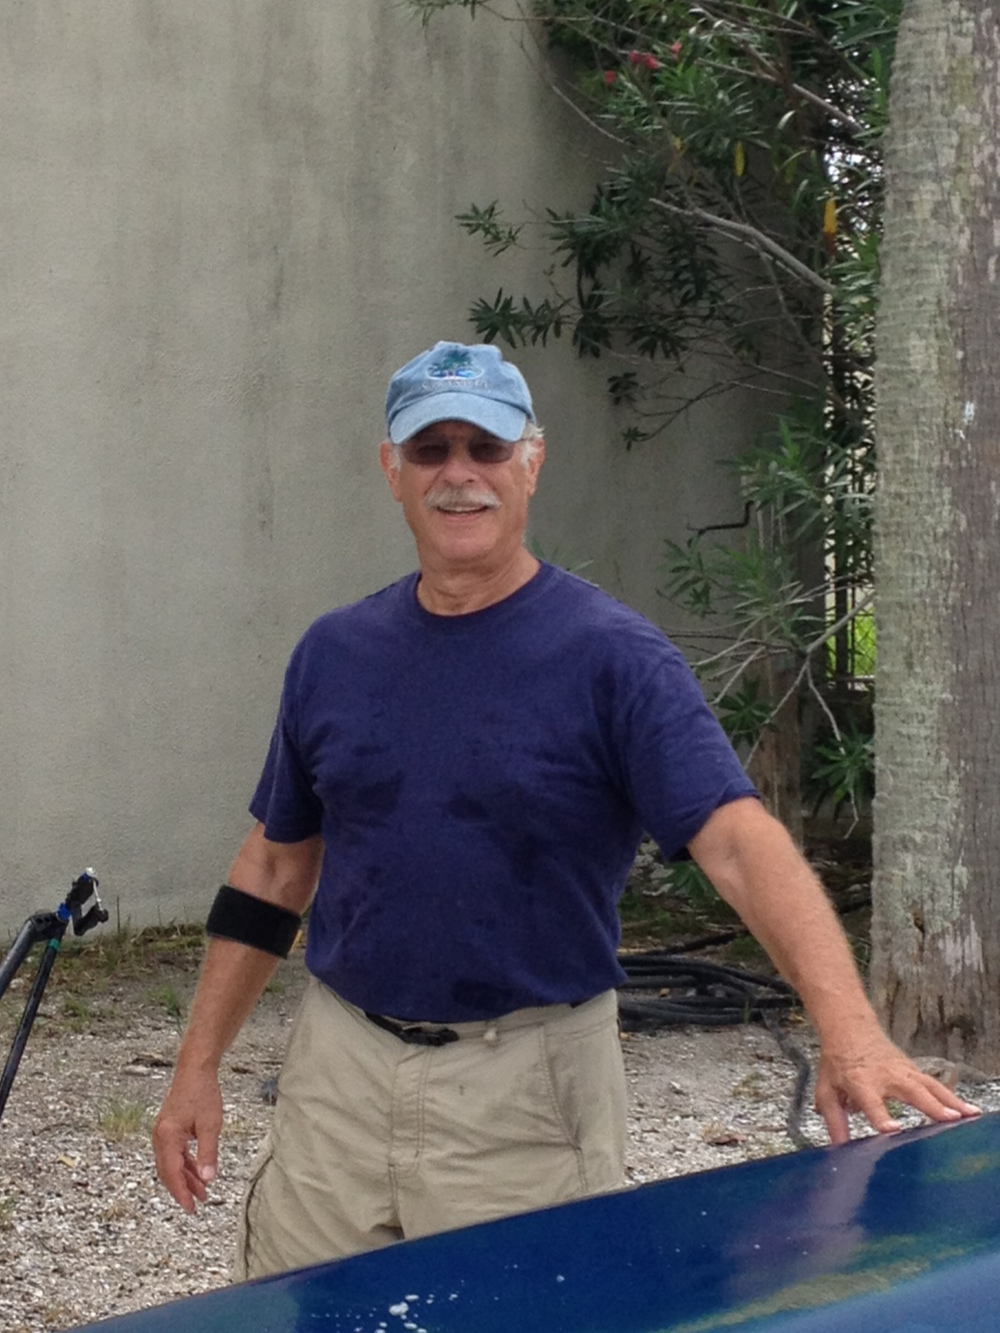 Rich Prager is an invaluable part of the team, always ready to lend a hand!